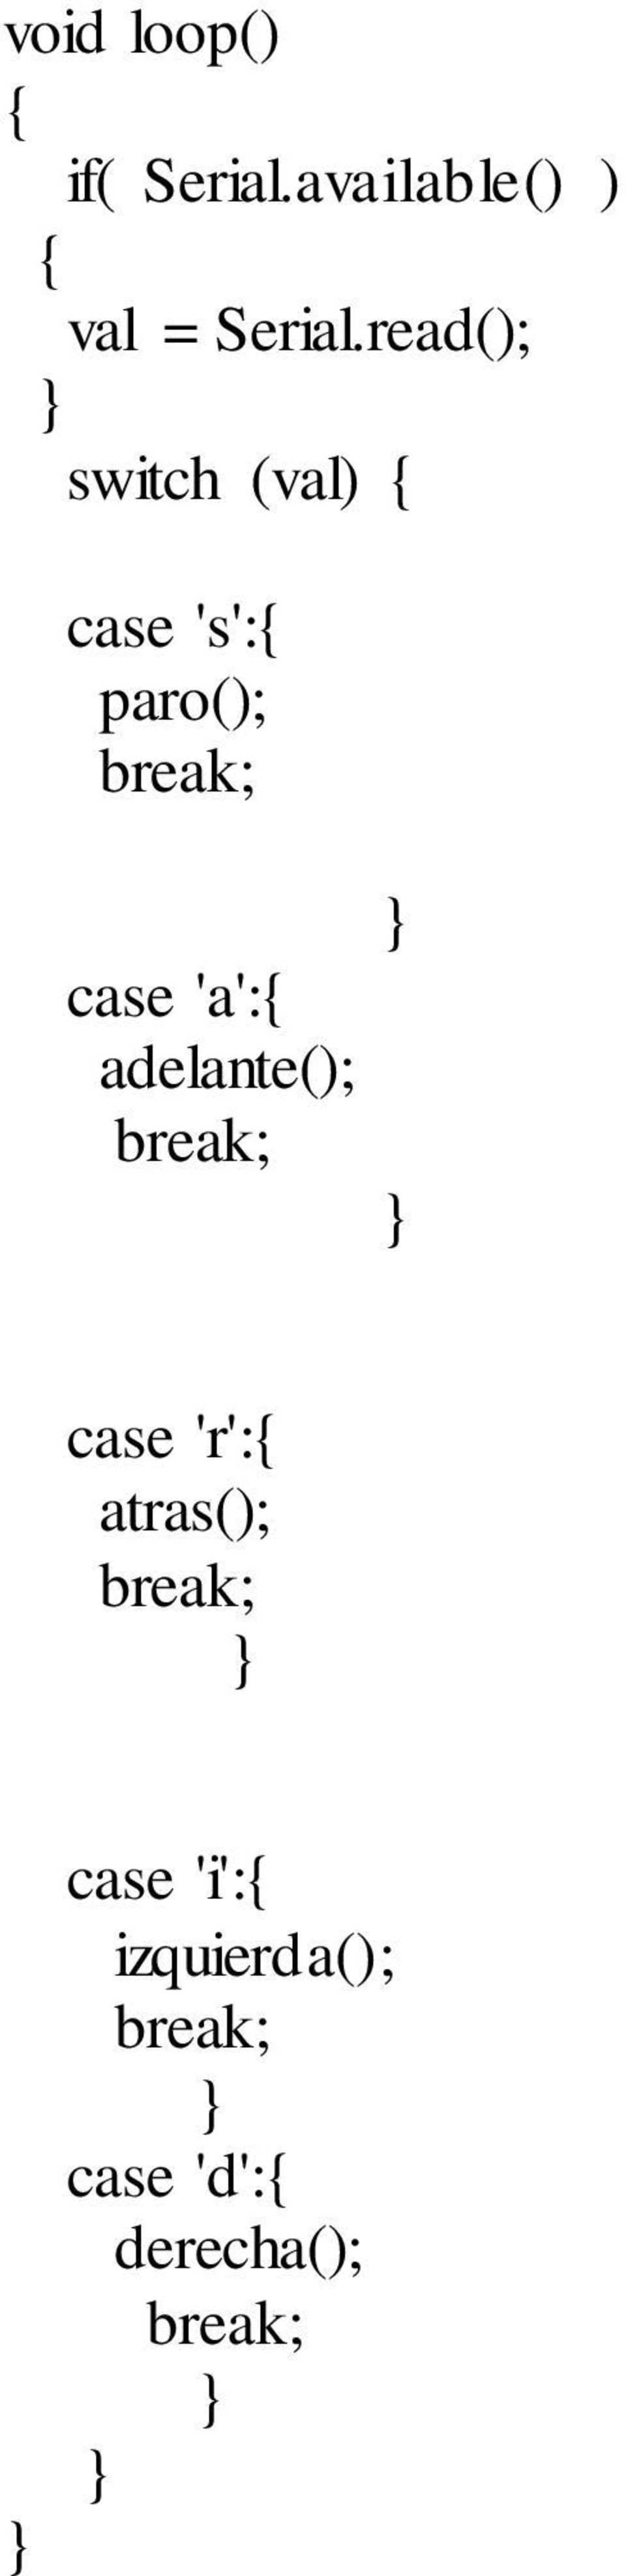 'a': adelante(); break; case 'r': atras(); break;